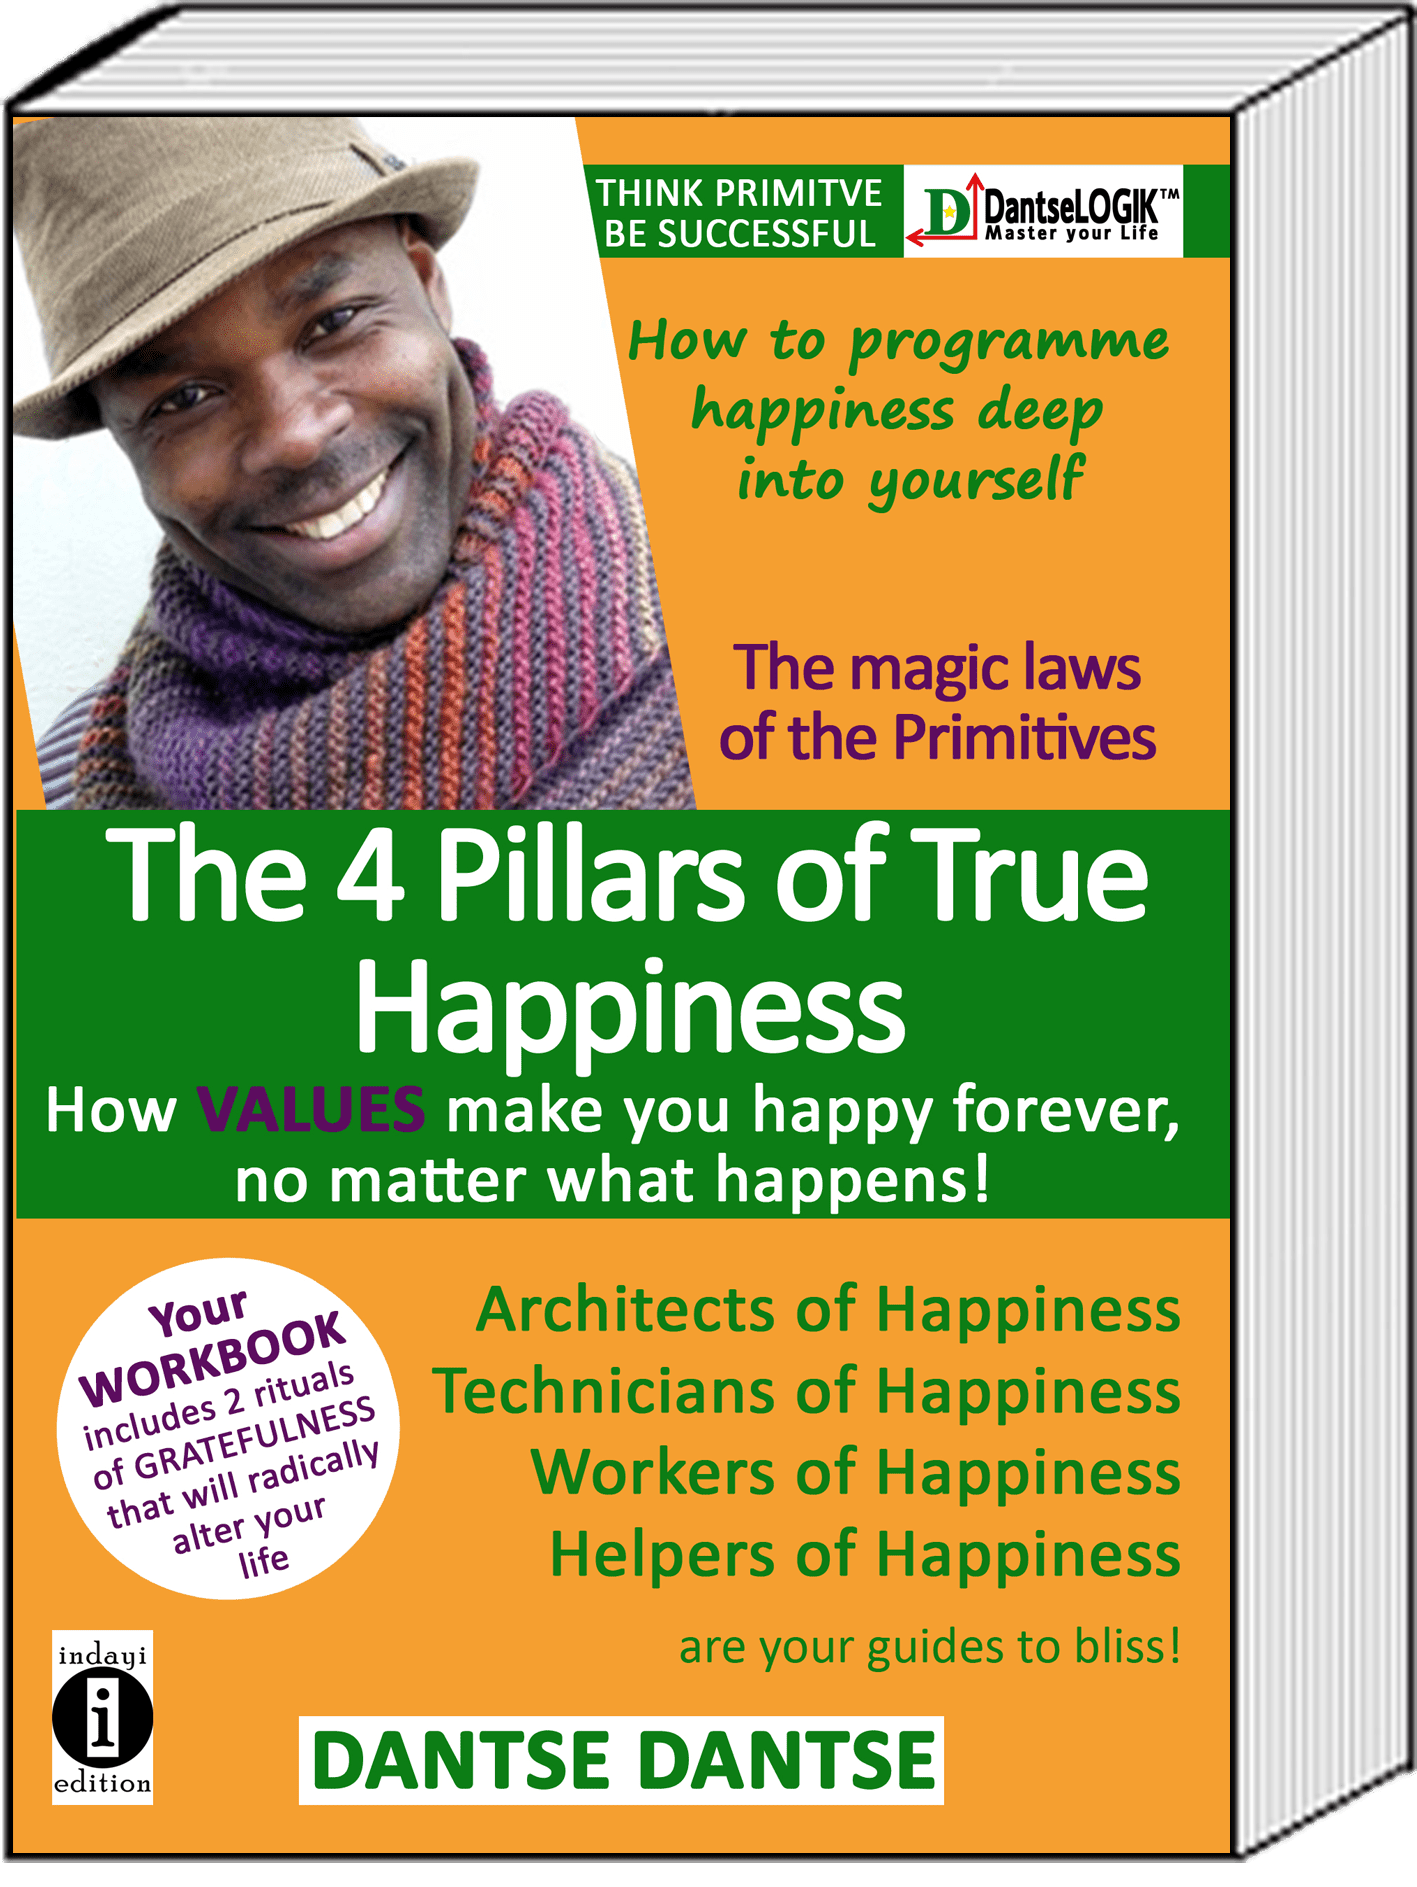 The 4 Pillars of Happiness: How VALUES make you happy forever, no matter what happens